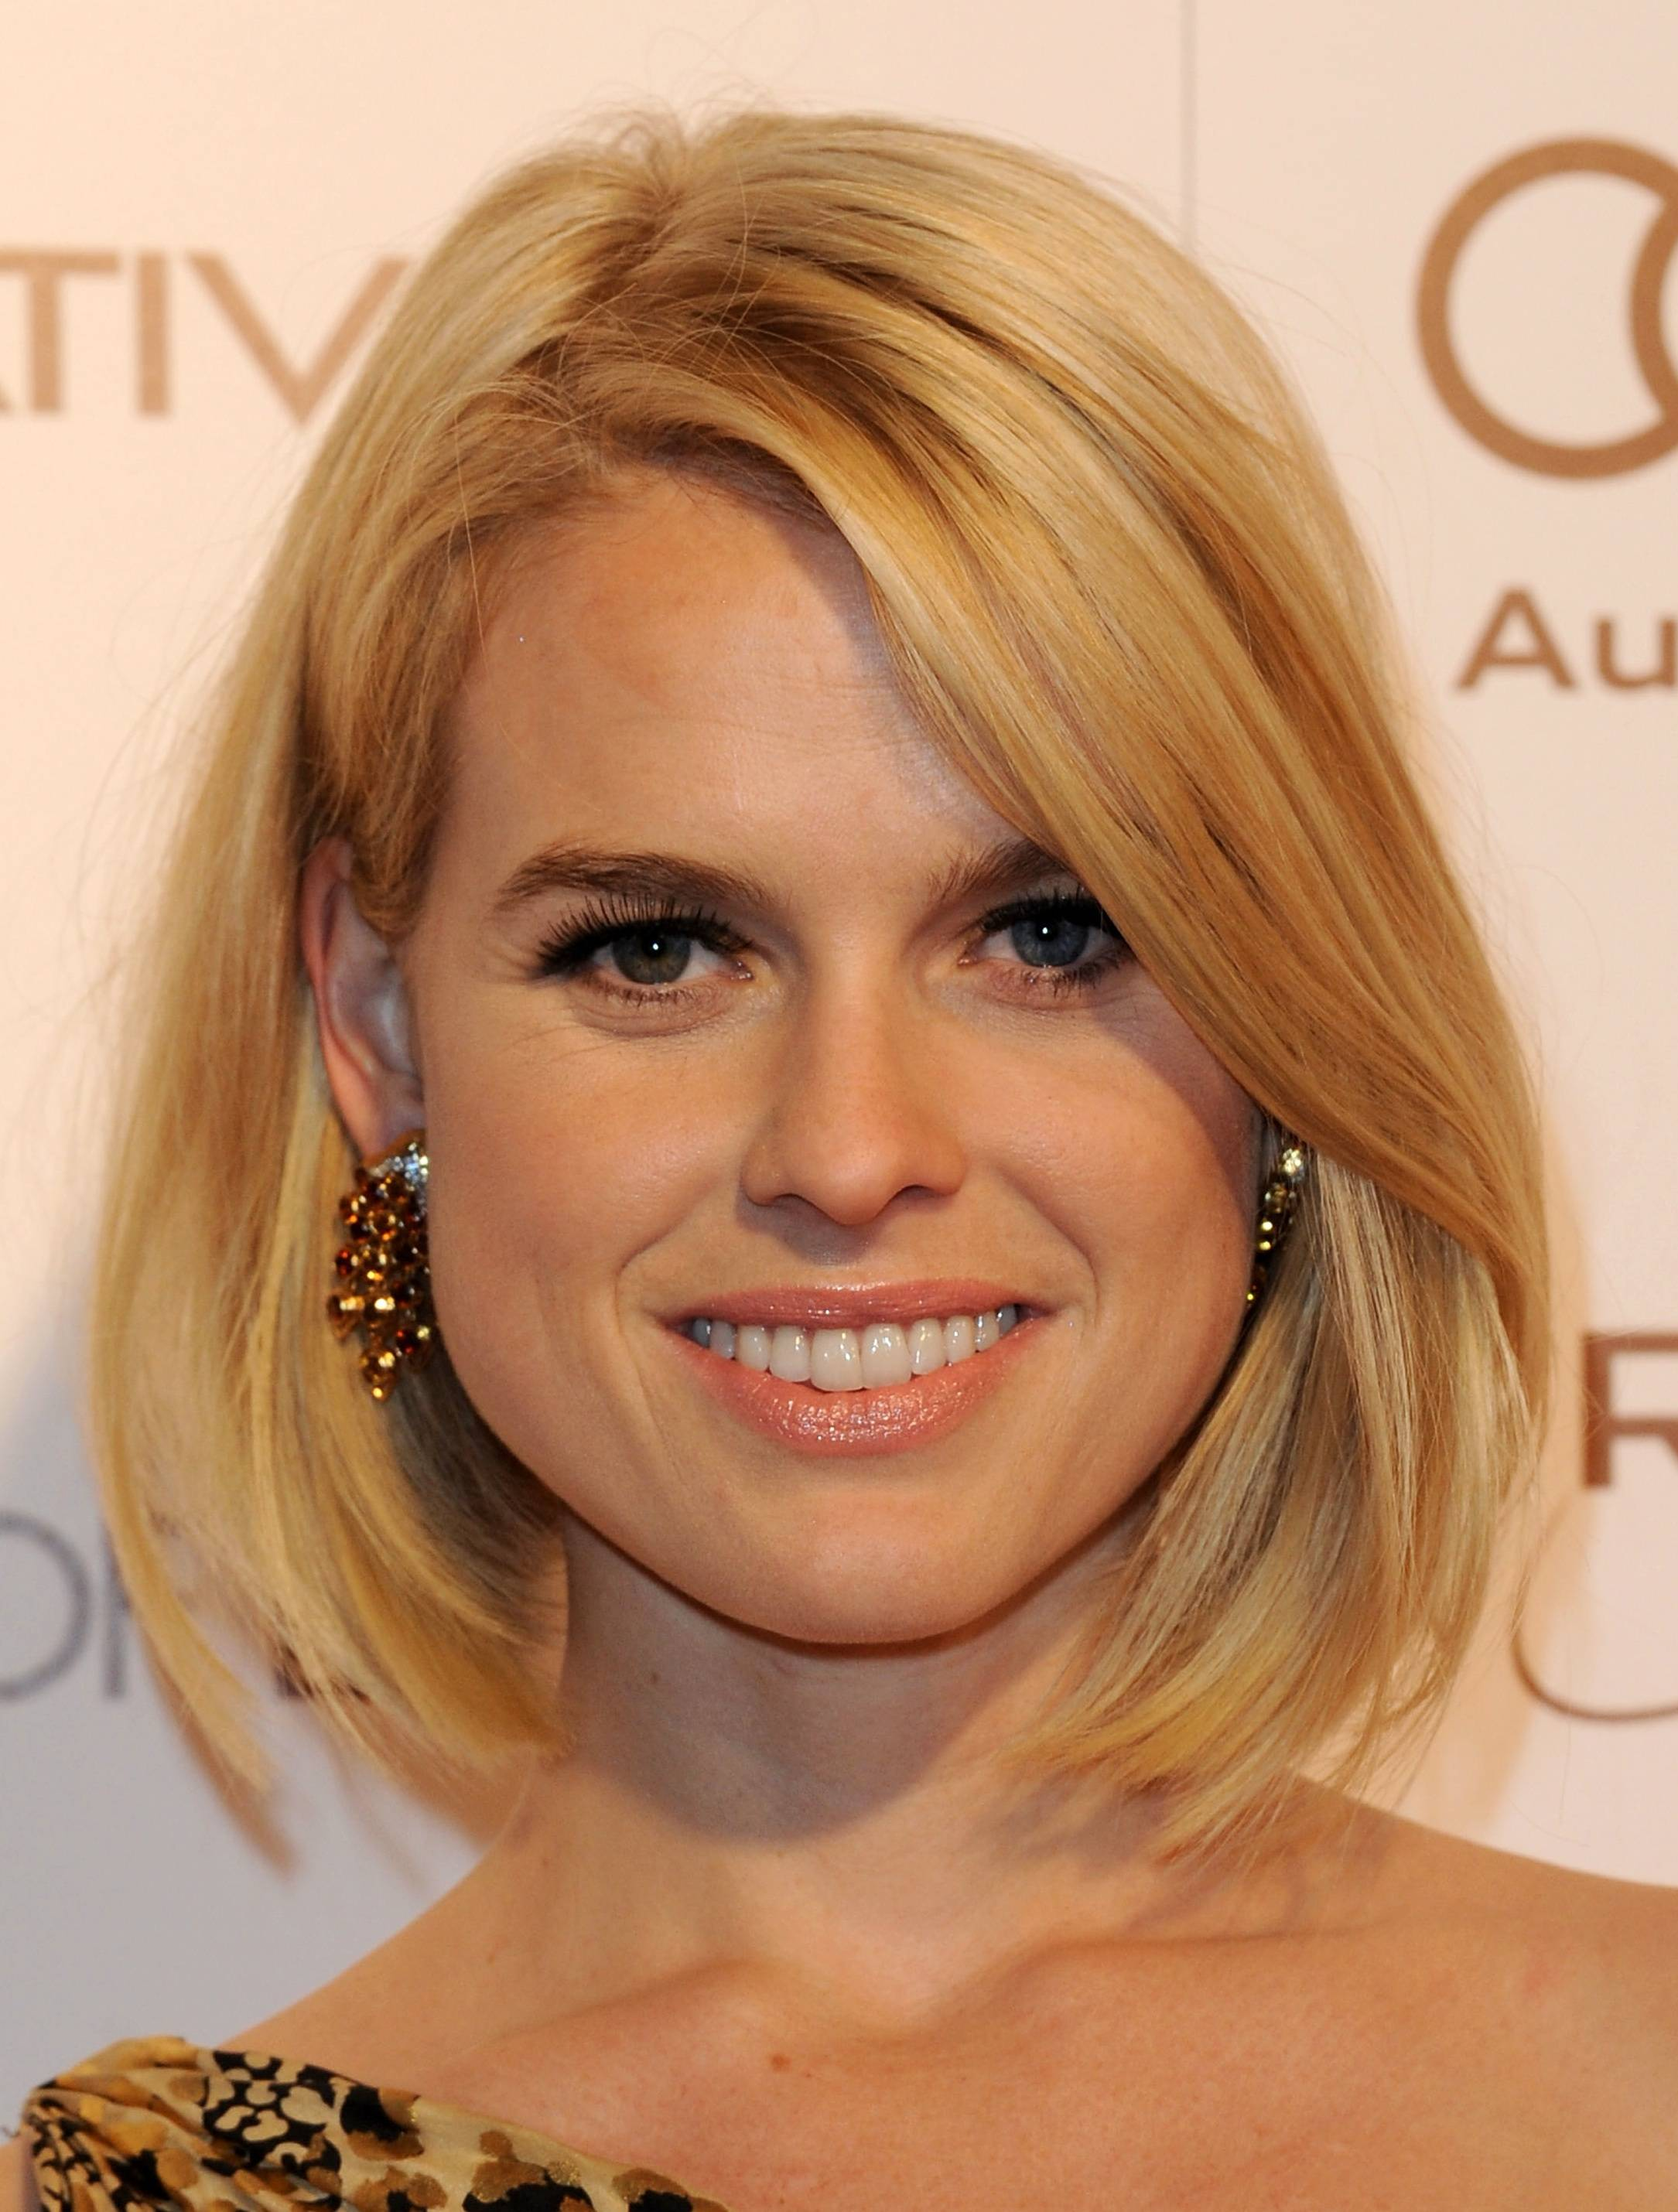 Pictures of Bob Hairstyles For Round Face Shapes